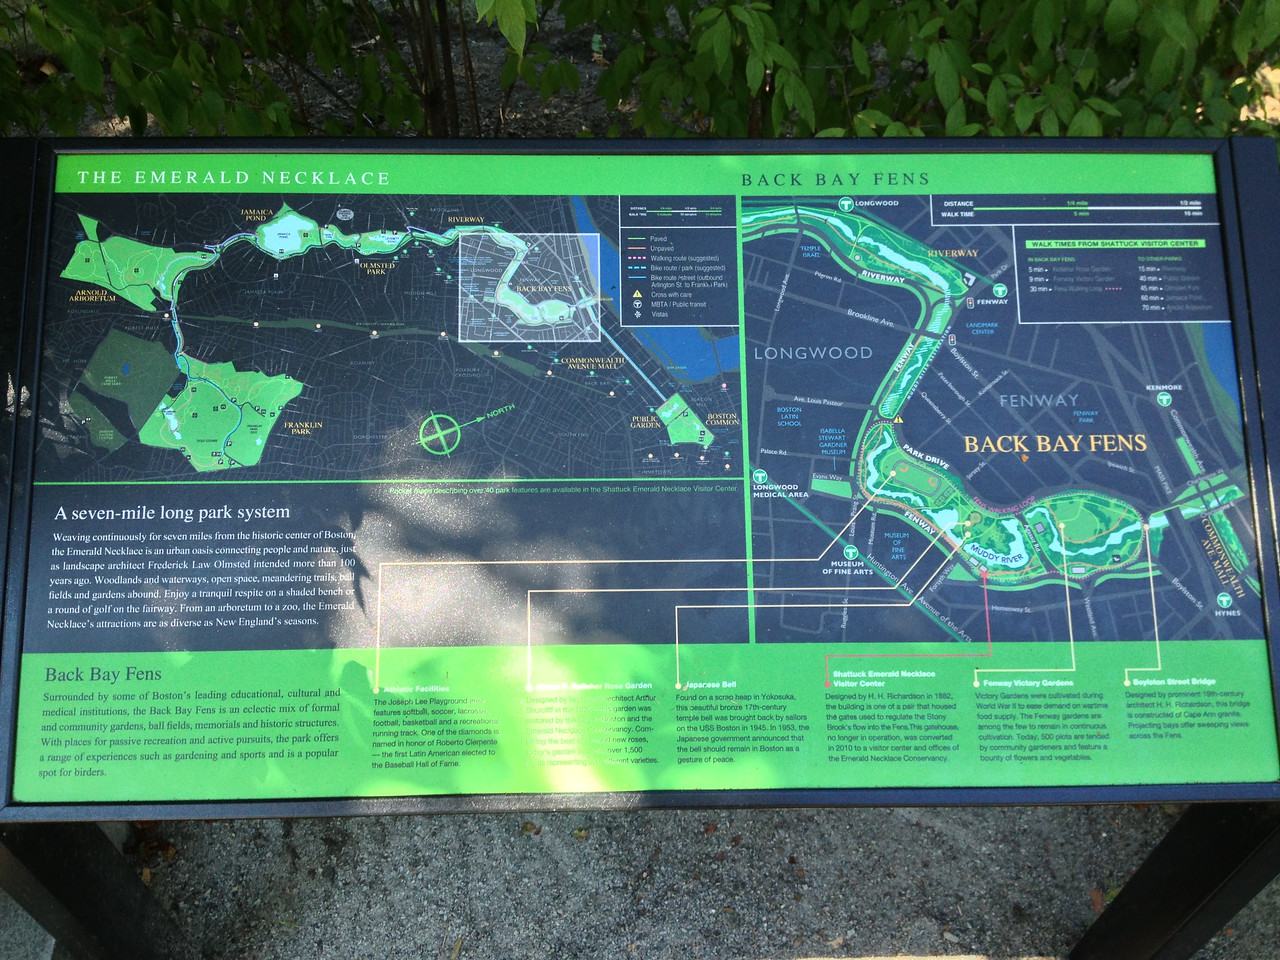 Diagram of the Emerald Necklace and the Back Bay Fens.